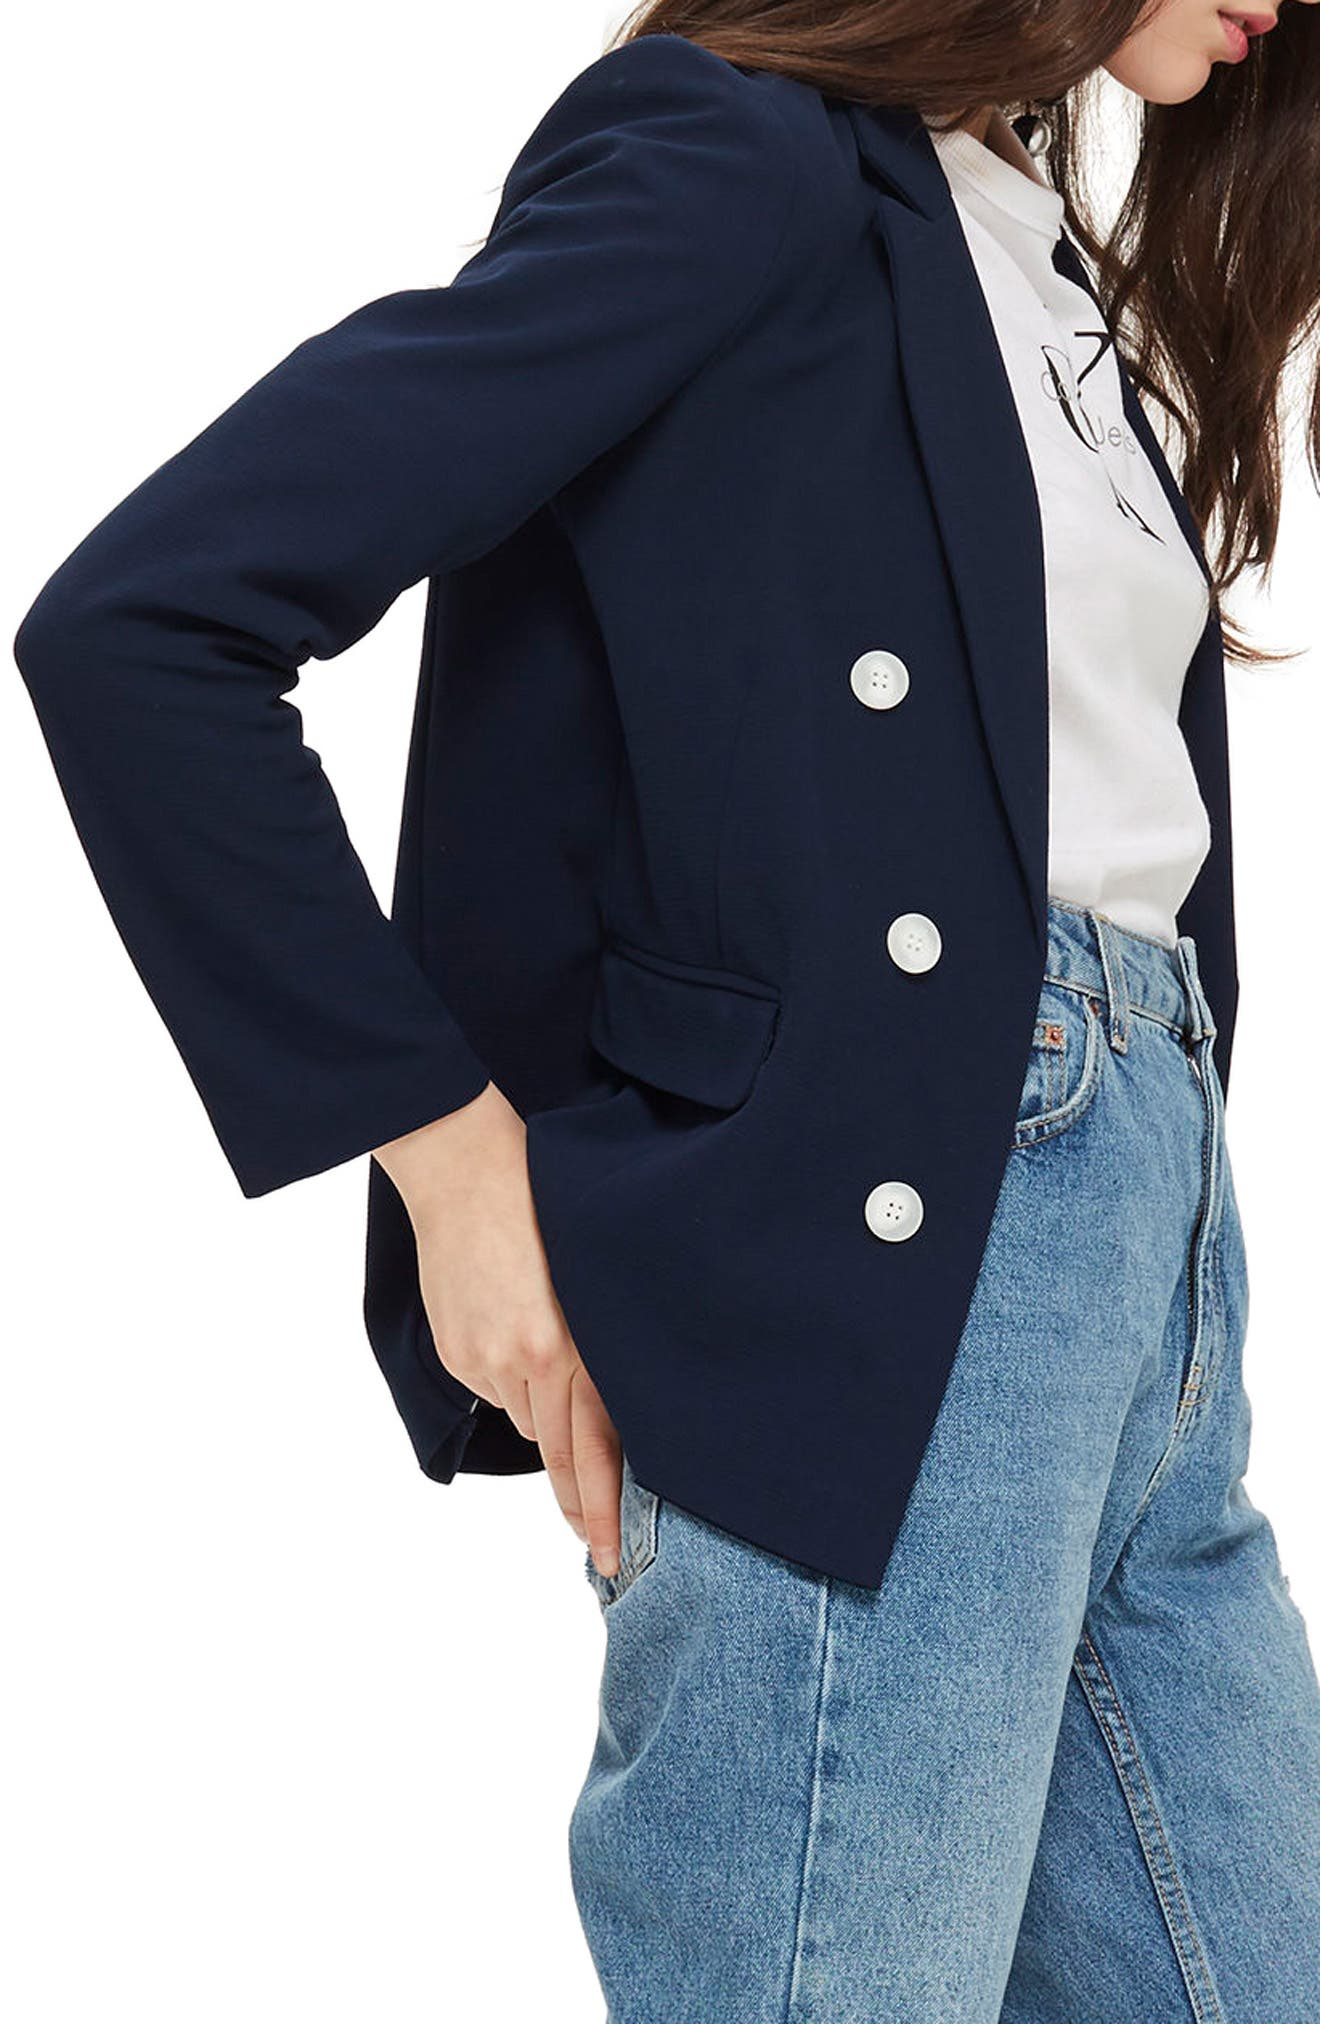 Bonded Bubble Crepe Jacket,                             Alternate thumbnail 4, color,                             Navy Blue